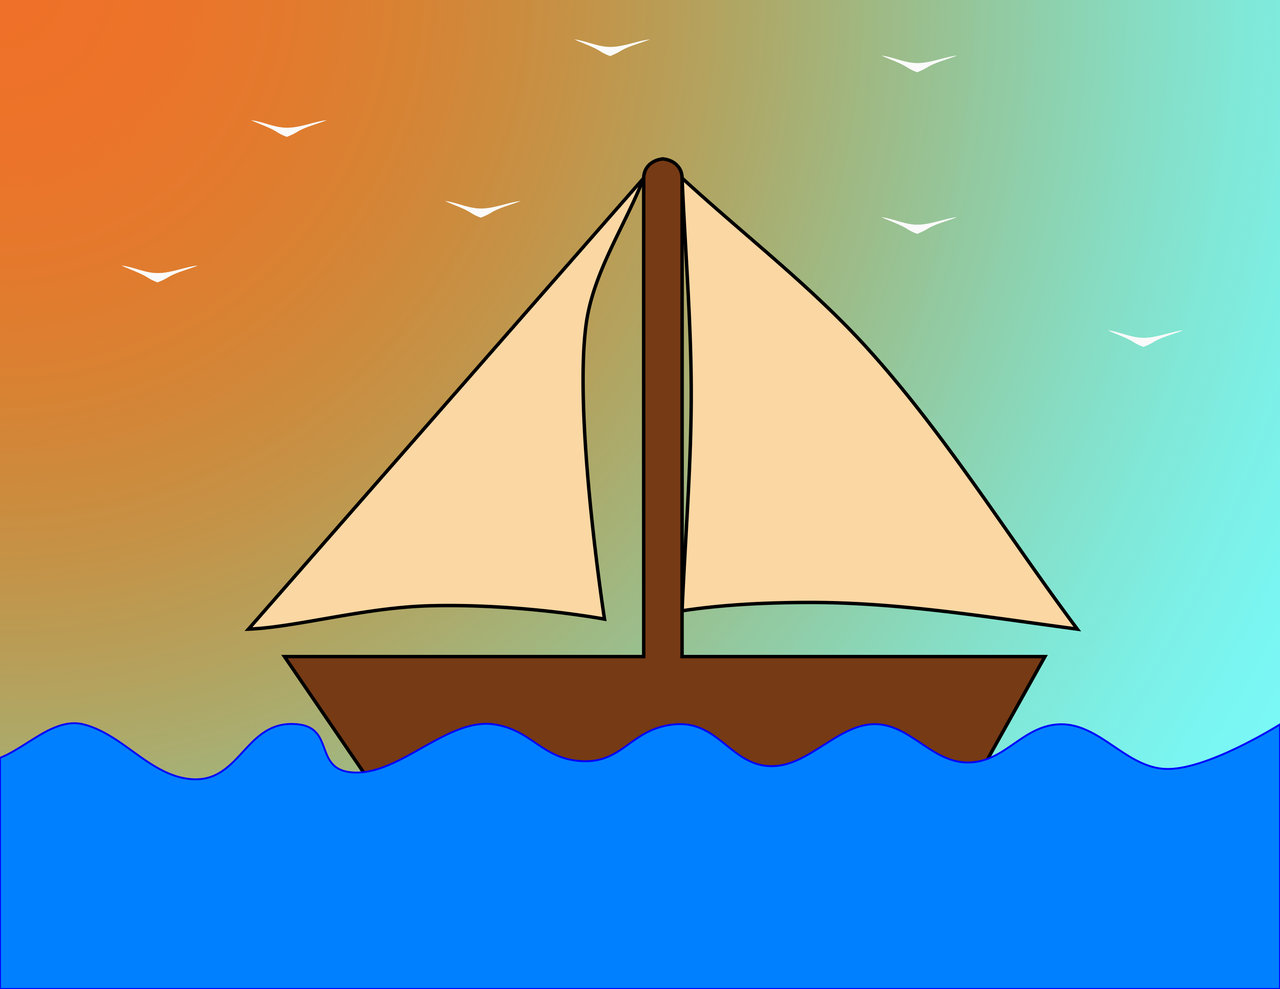 Boat at Sea by acrogenesis on DeviantArt.